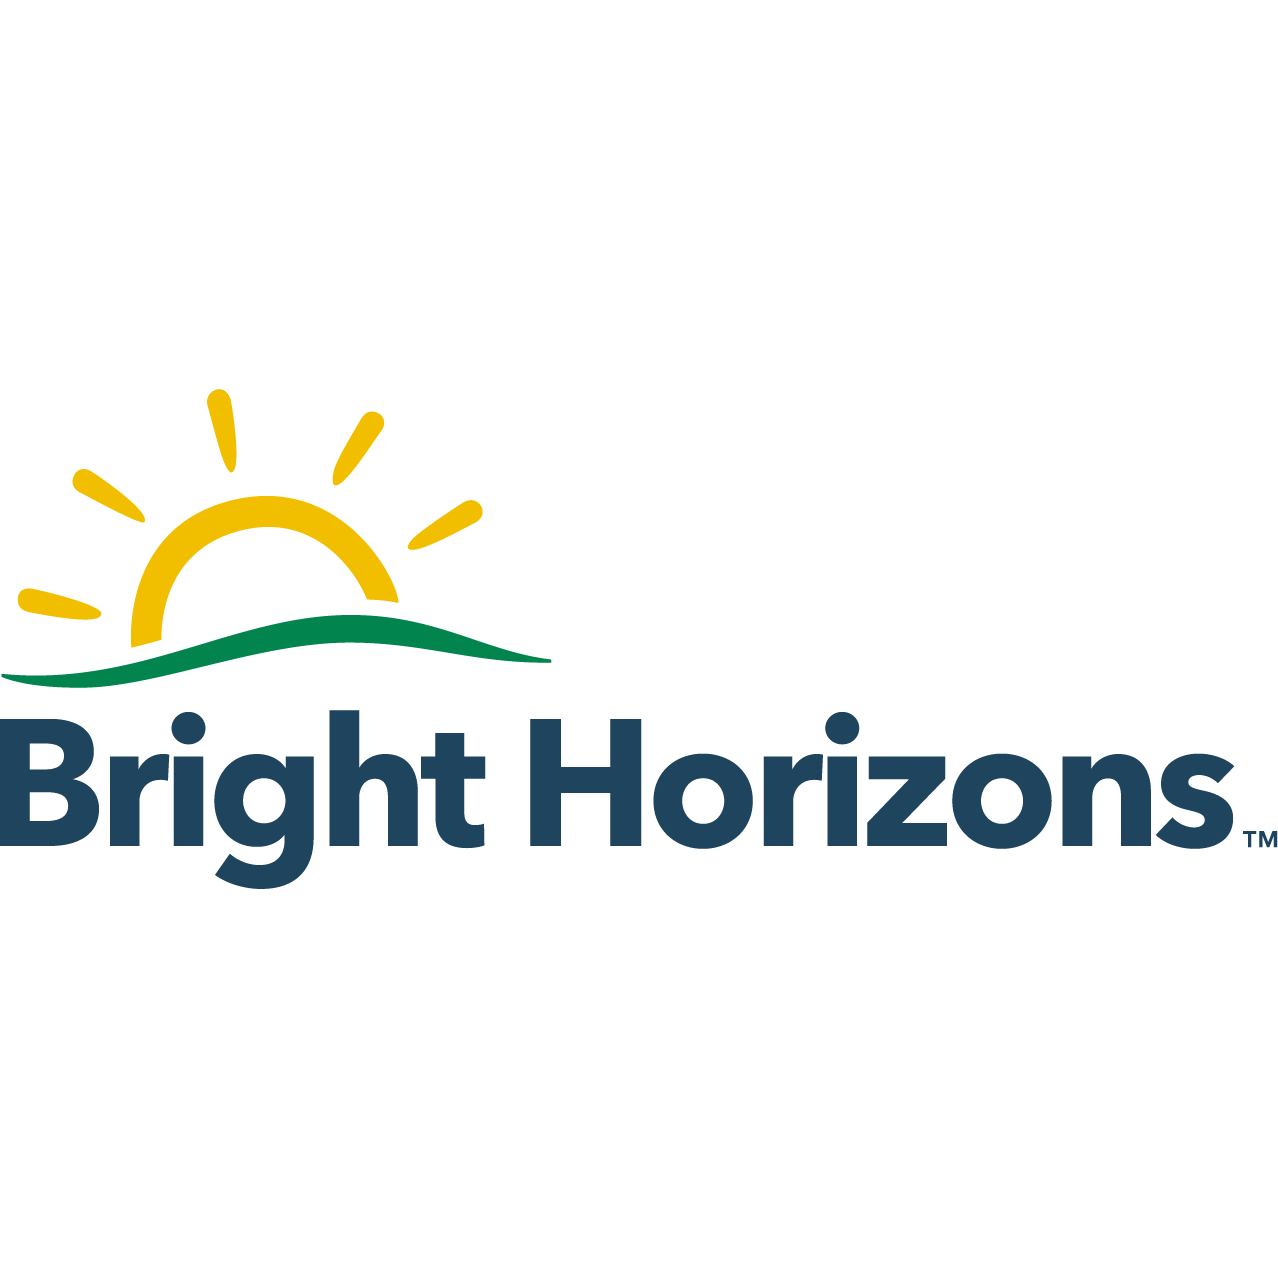 Bright Horizons St Swithin Early Learning and Childcare - Aberdeen, Aberdeenshire AB10 6NU - 03334 553765 | ShowMeLocal.com